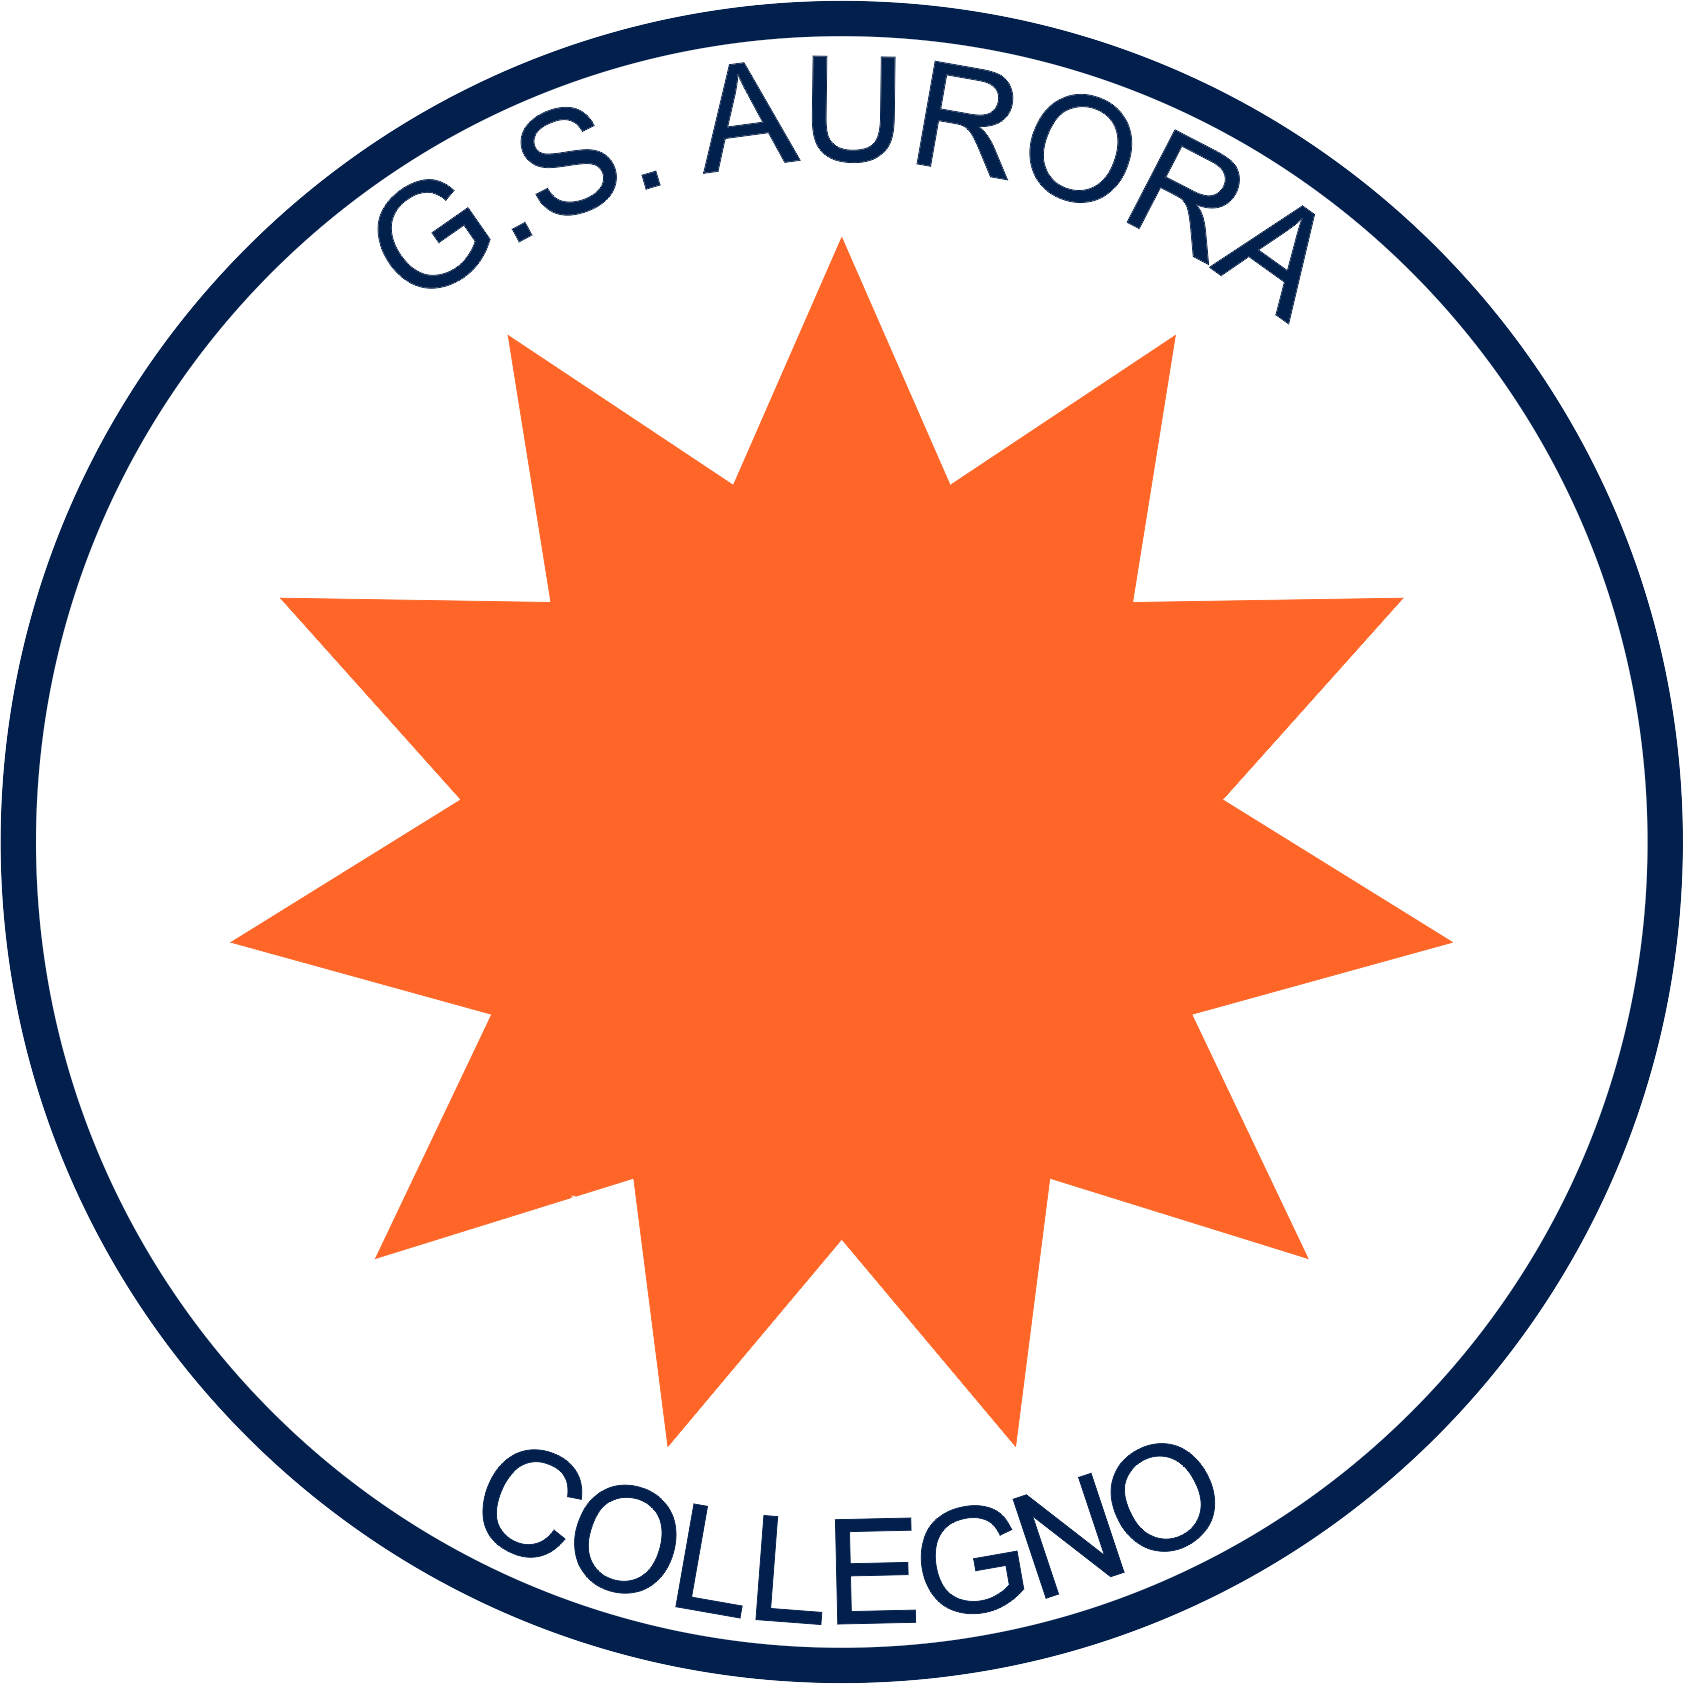 Gym Society Aurora